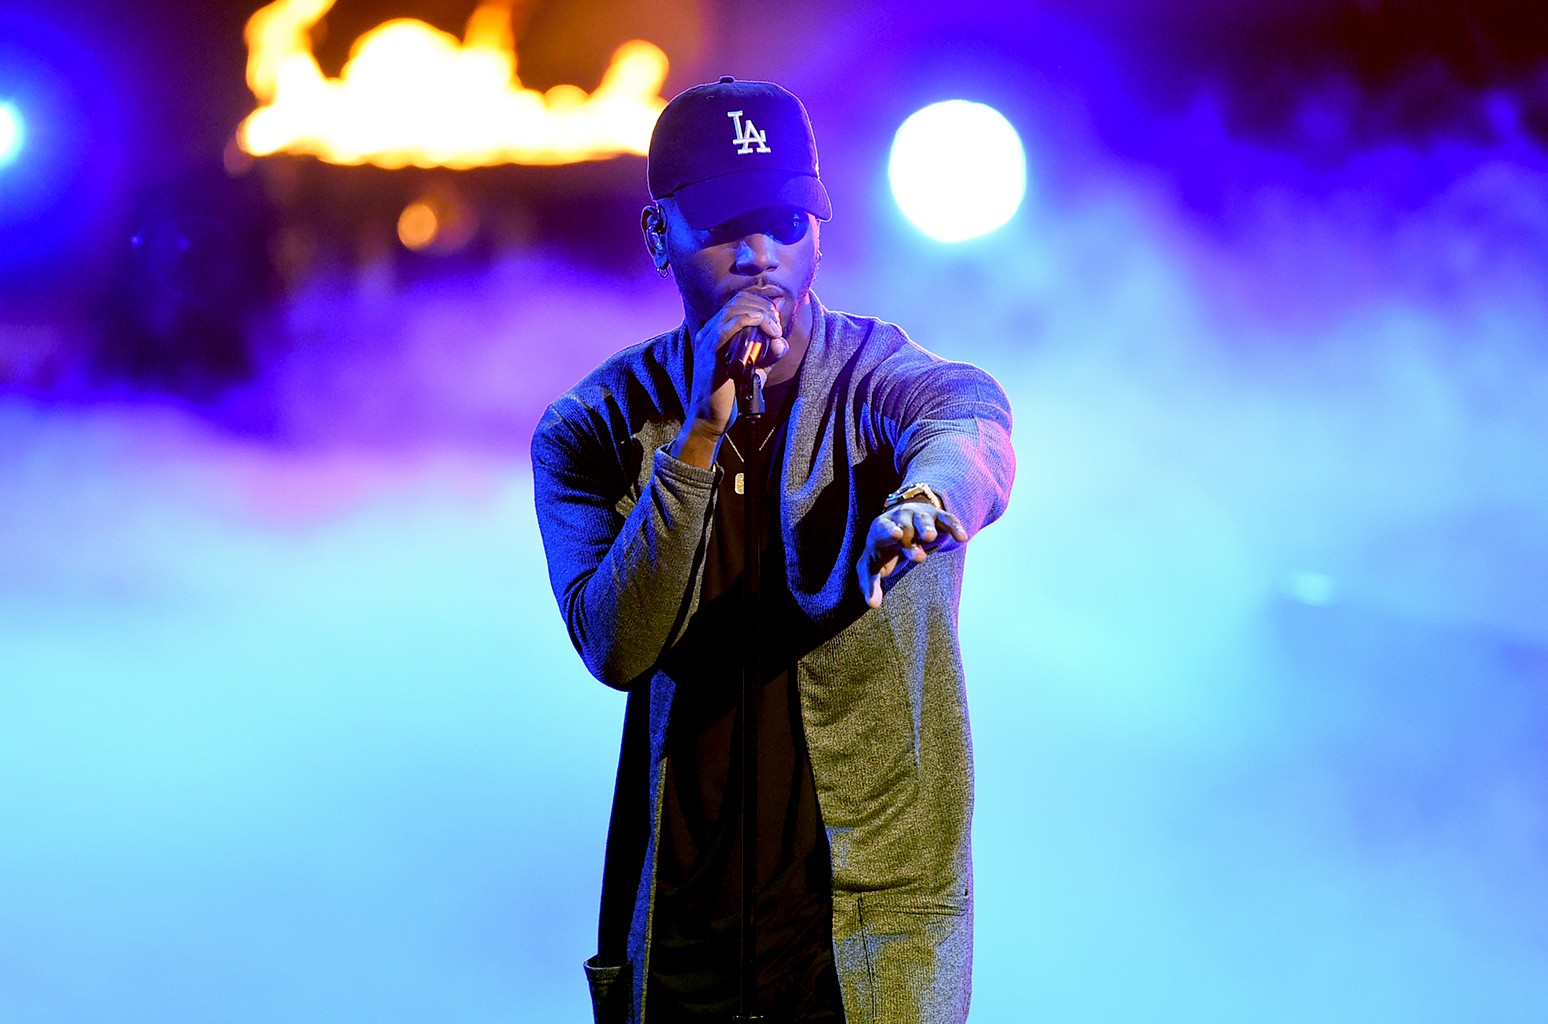 Bryson Tiller performs onstage during the 2016 BET Awards at the Microsoft Theater on June 26, 2016 in Los Angeles.